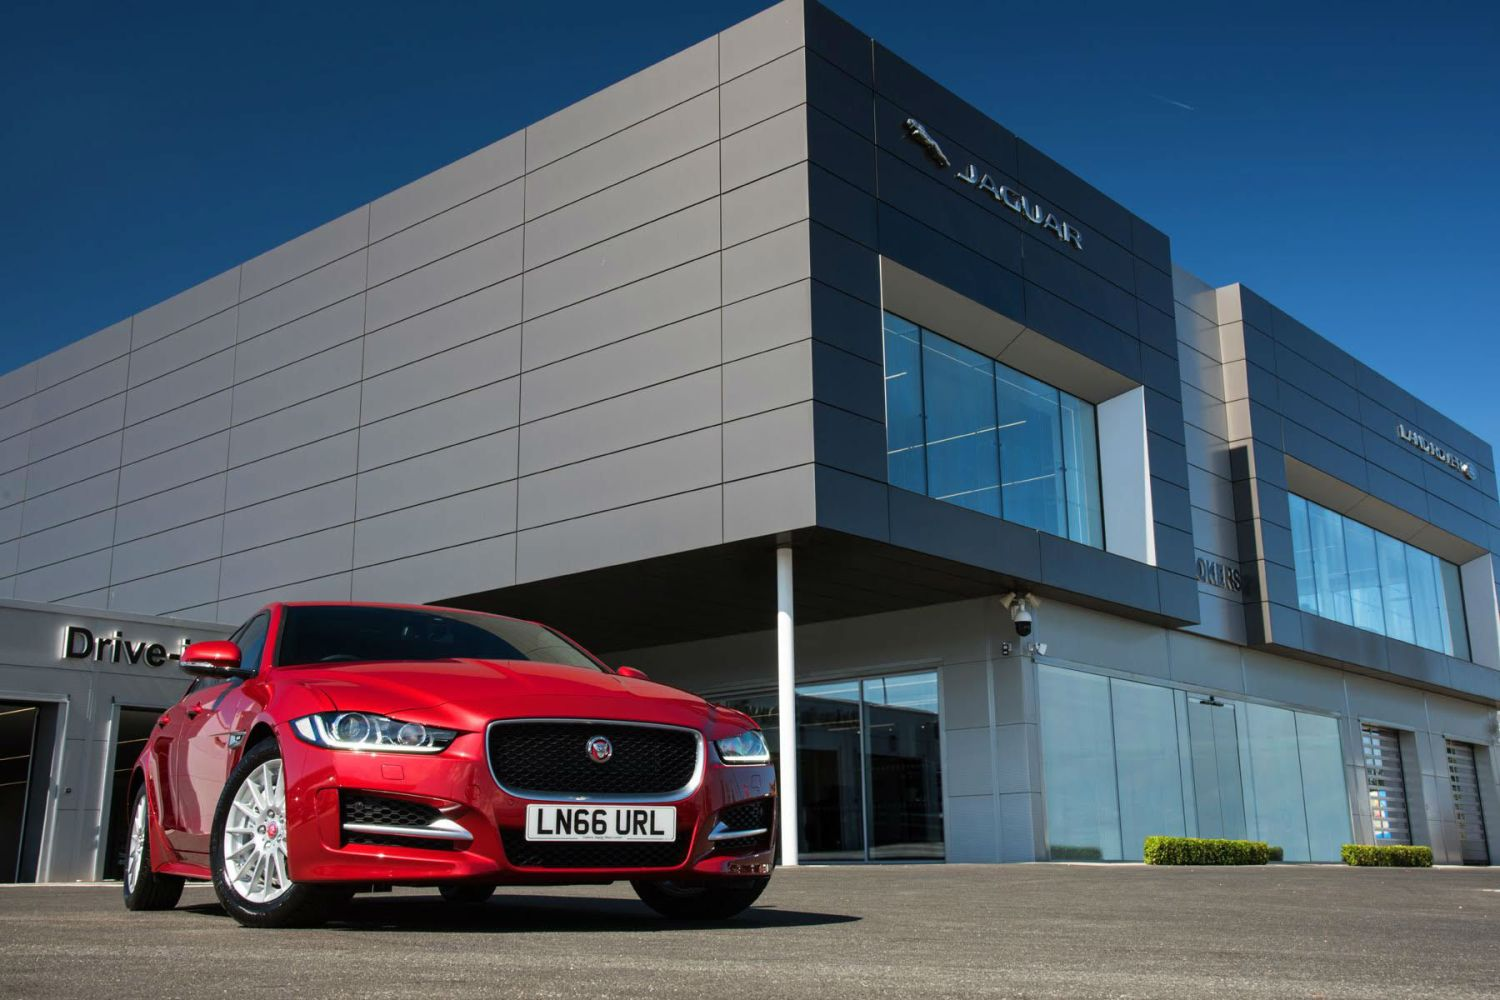 Jaguar invites buyers to conduct their own group tests